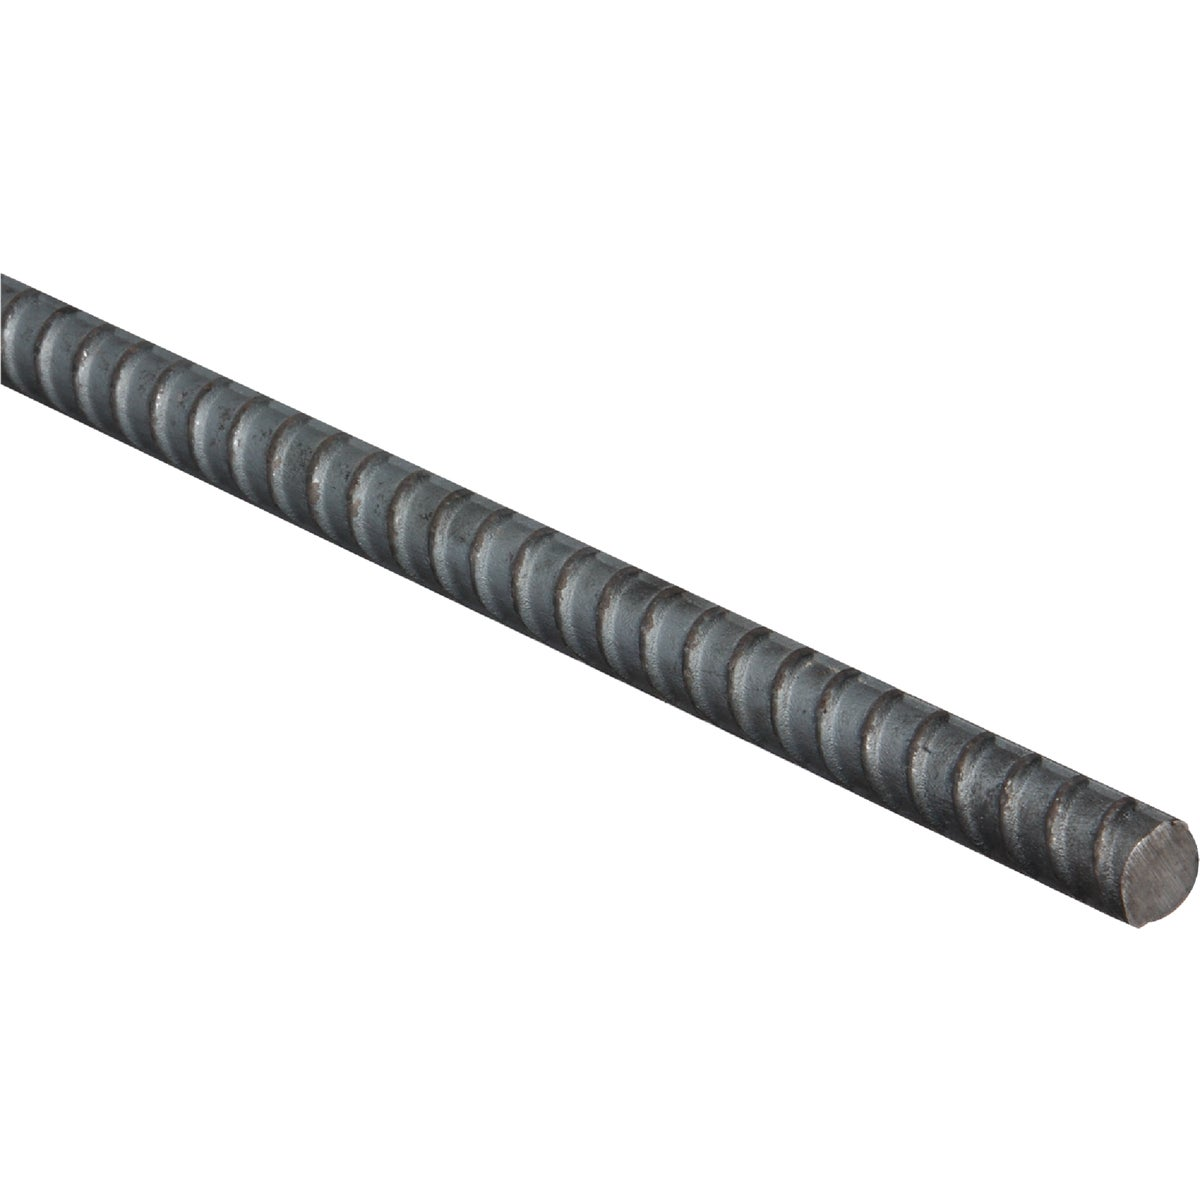 "1/2""X2' #4 REBAR - 1224RBP by Primesource"